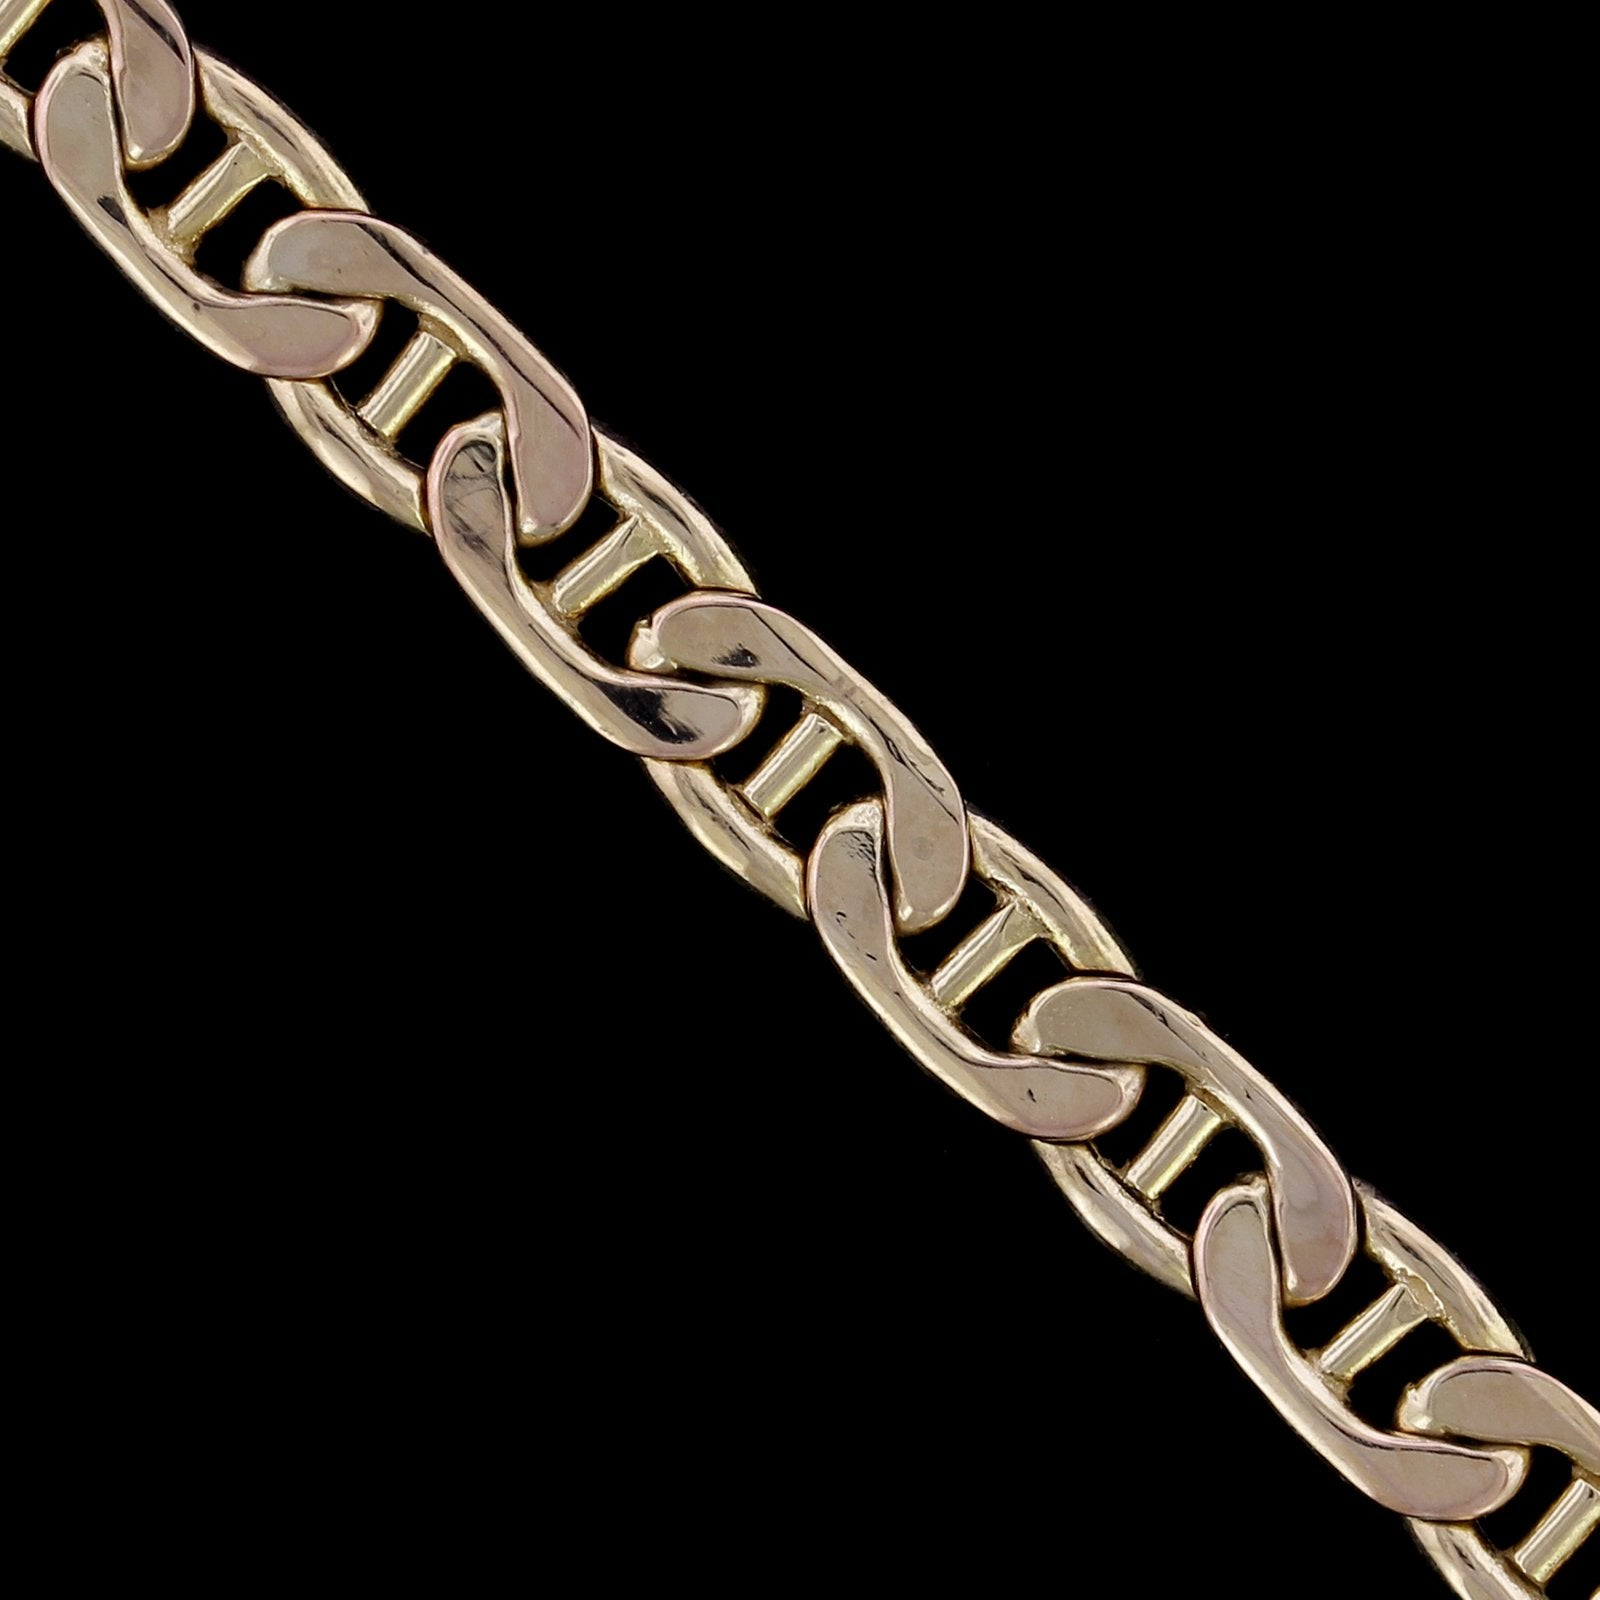 14K Yellow Gold Estate Mariner Link Bracelet